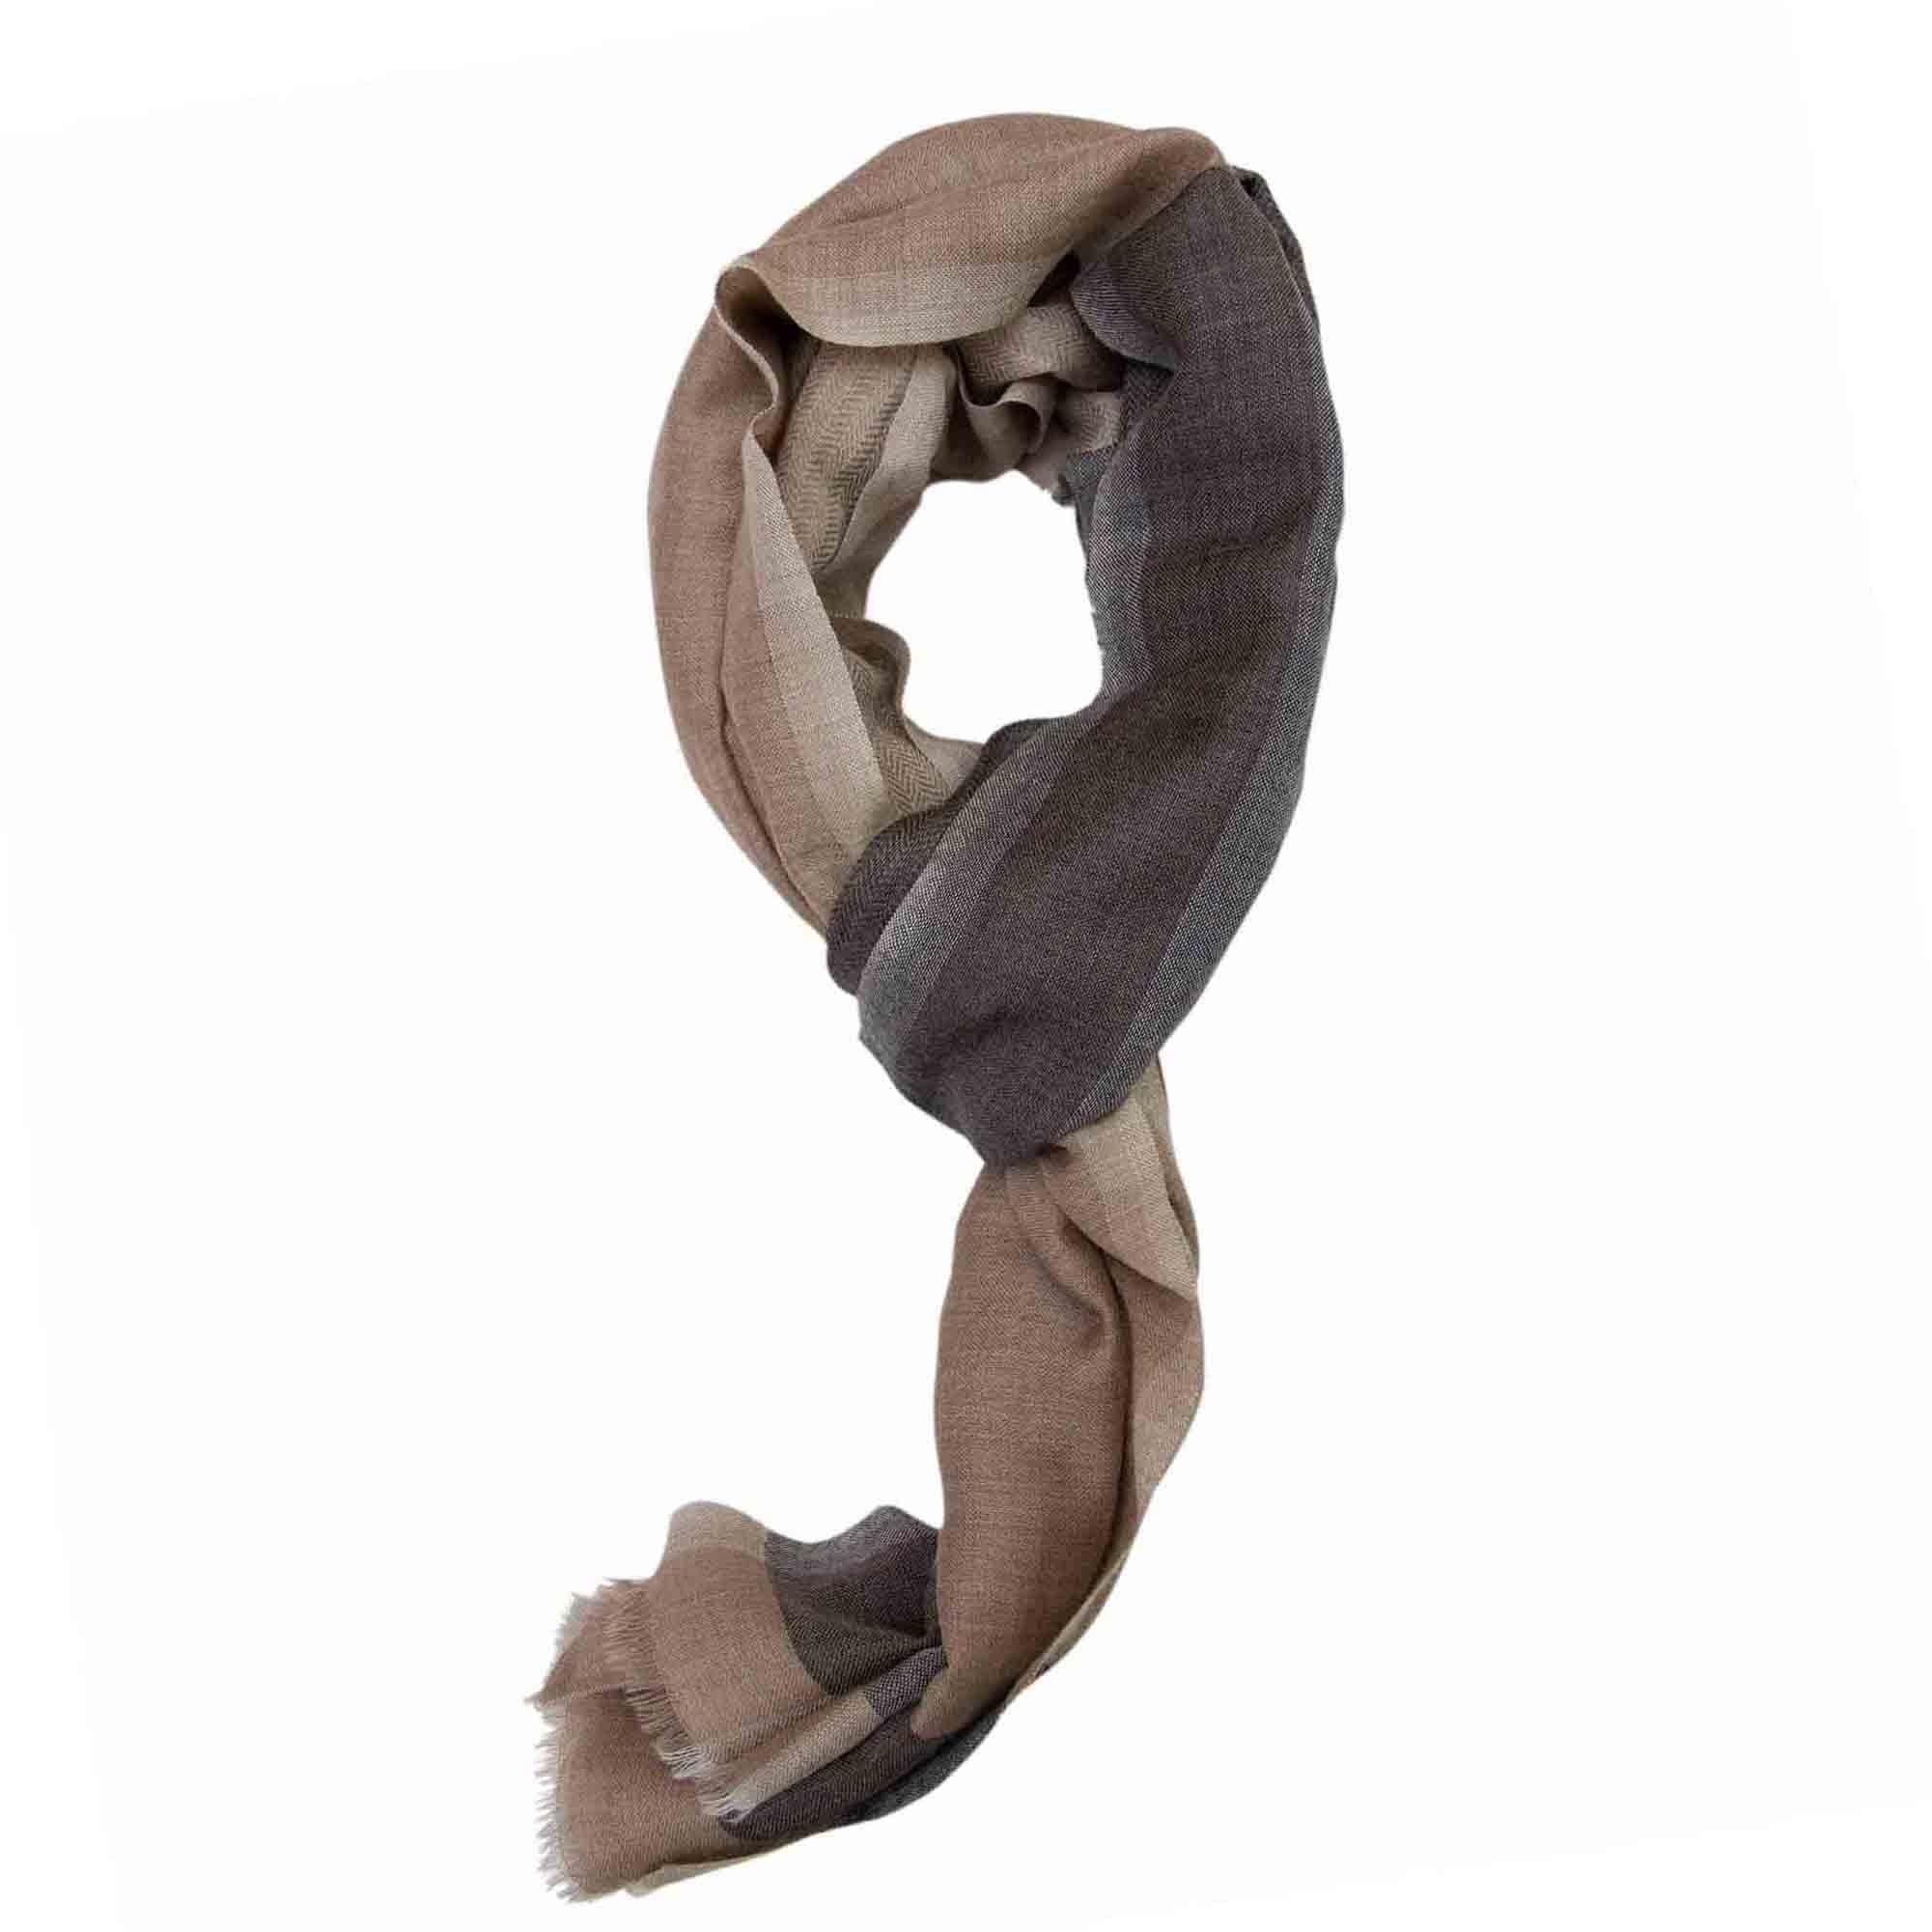 Grey and Beige Alternating Patterns Super Fine Merino Wool Scarf